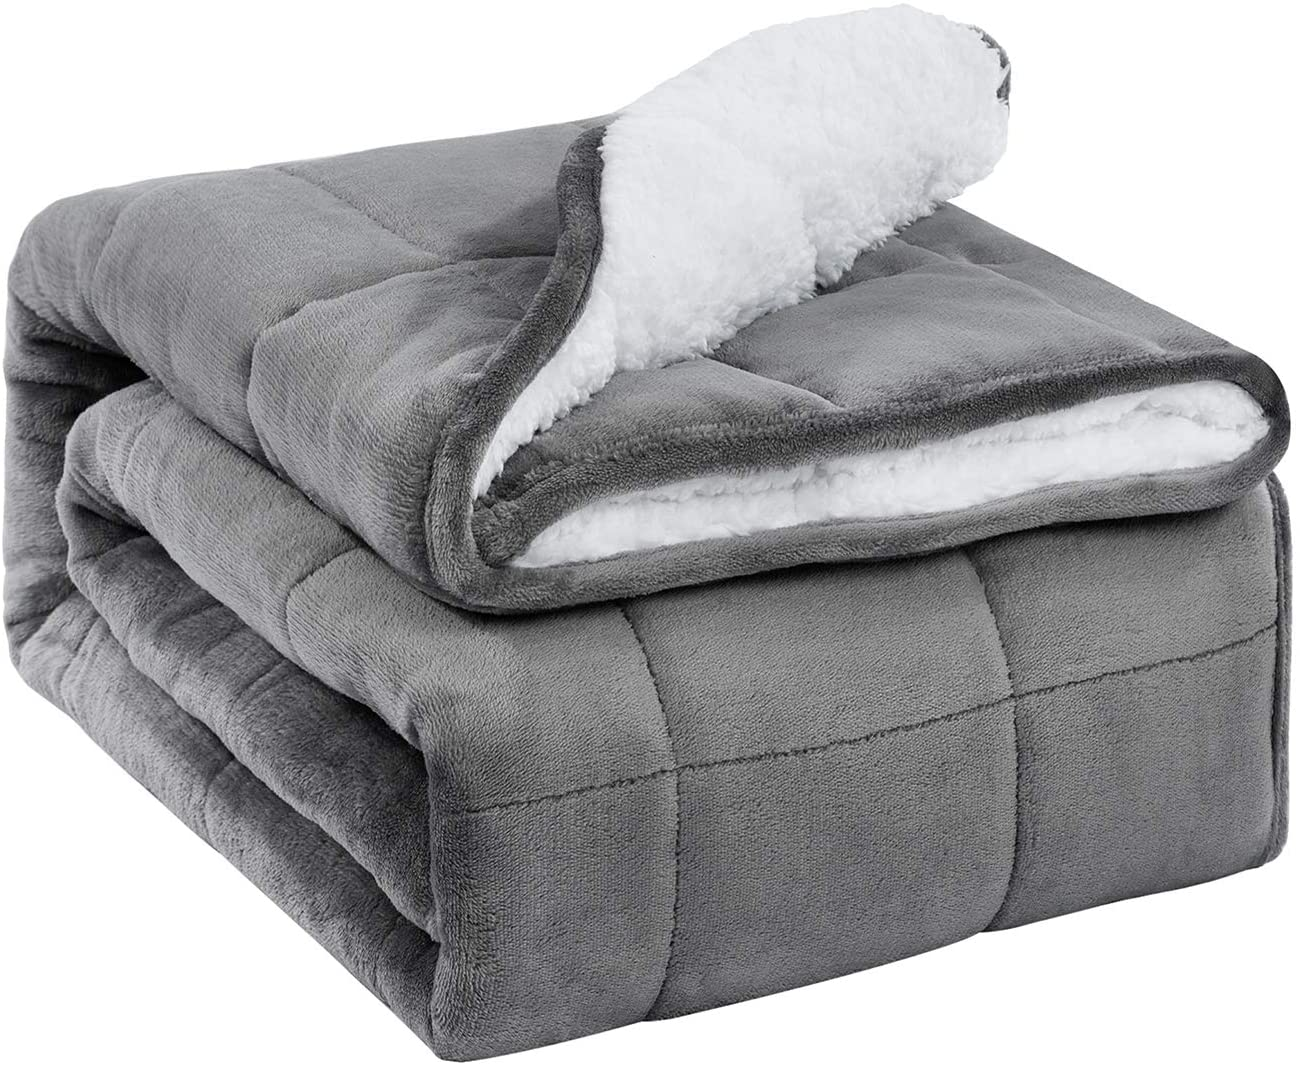 Amazon Com Buzio Sherpa Fleece Weighted Blanket For Adult 15 Lbs Thick Fuzzy Bed Blanket With Soft Plush Flannel Dual Sided Cozy Fluffy Blanket 48 X 72 Inches Grey Home Kitchen